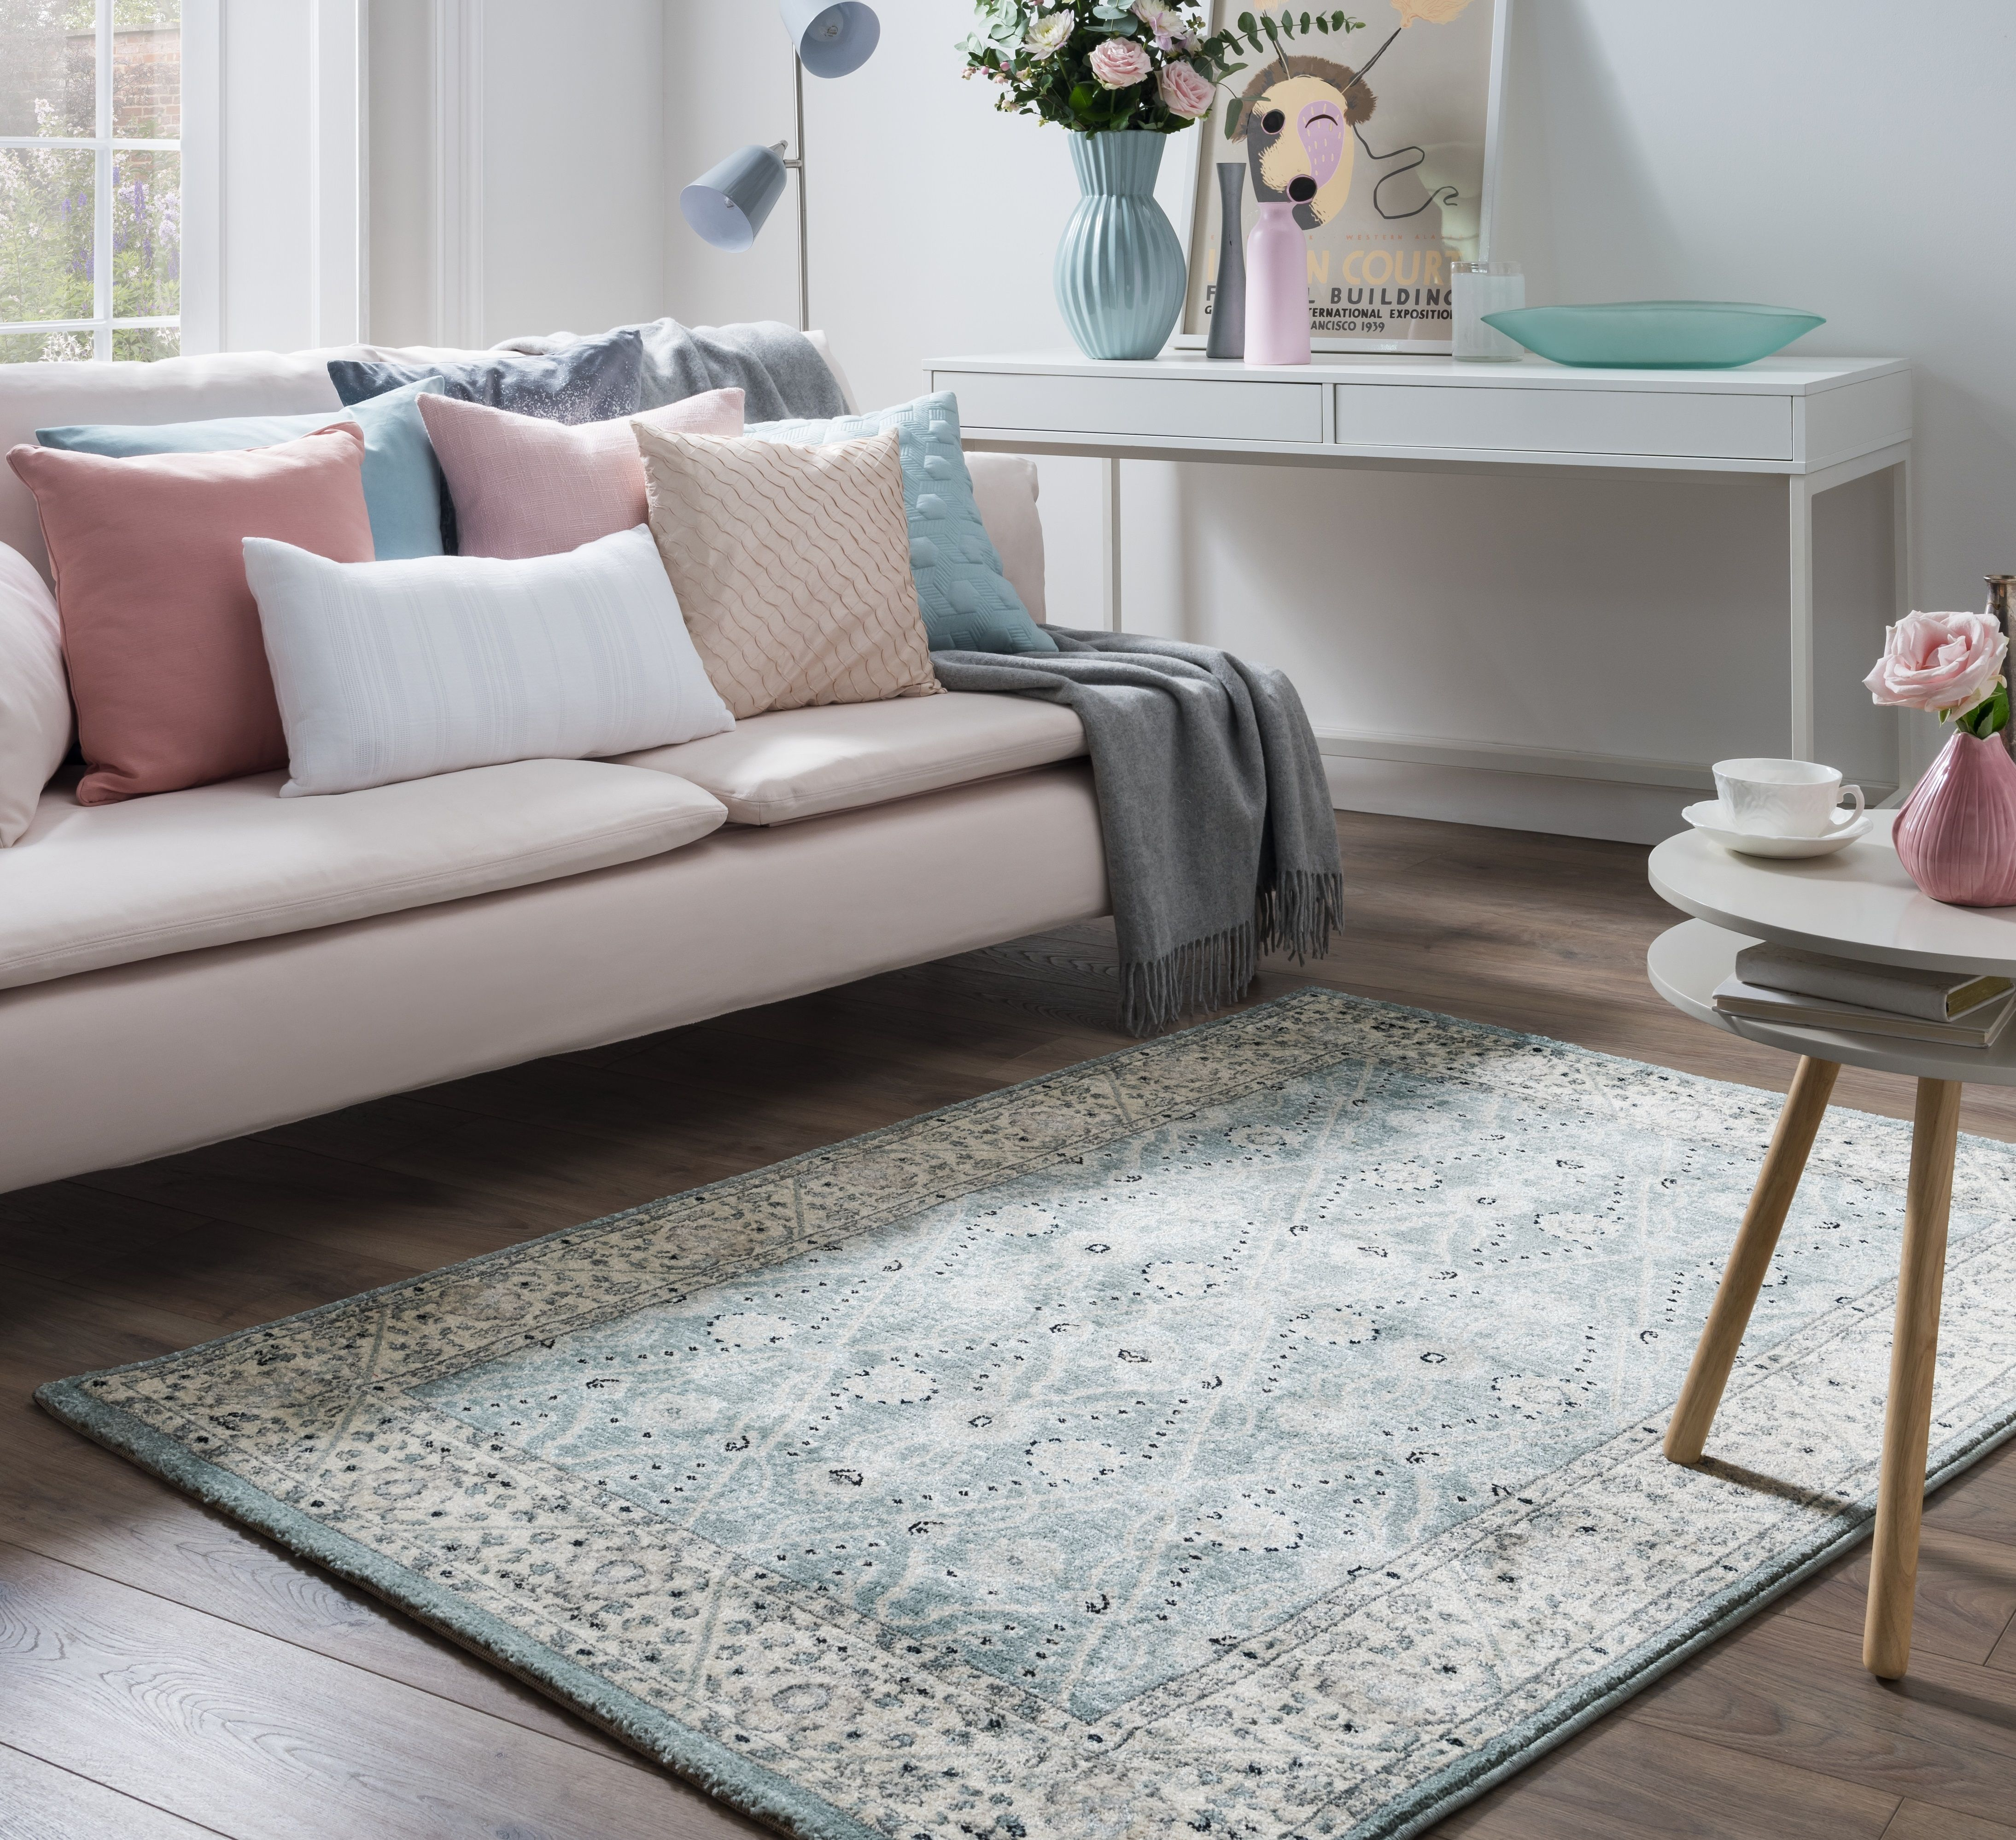 Pin by Carpetright on Our latest rugs Decorating a new